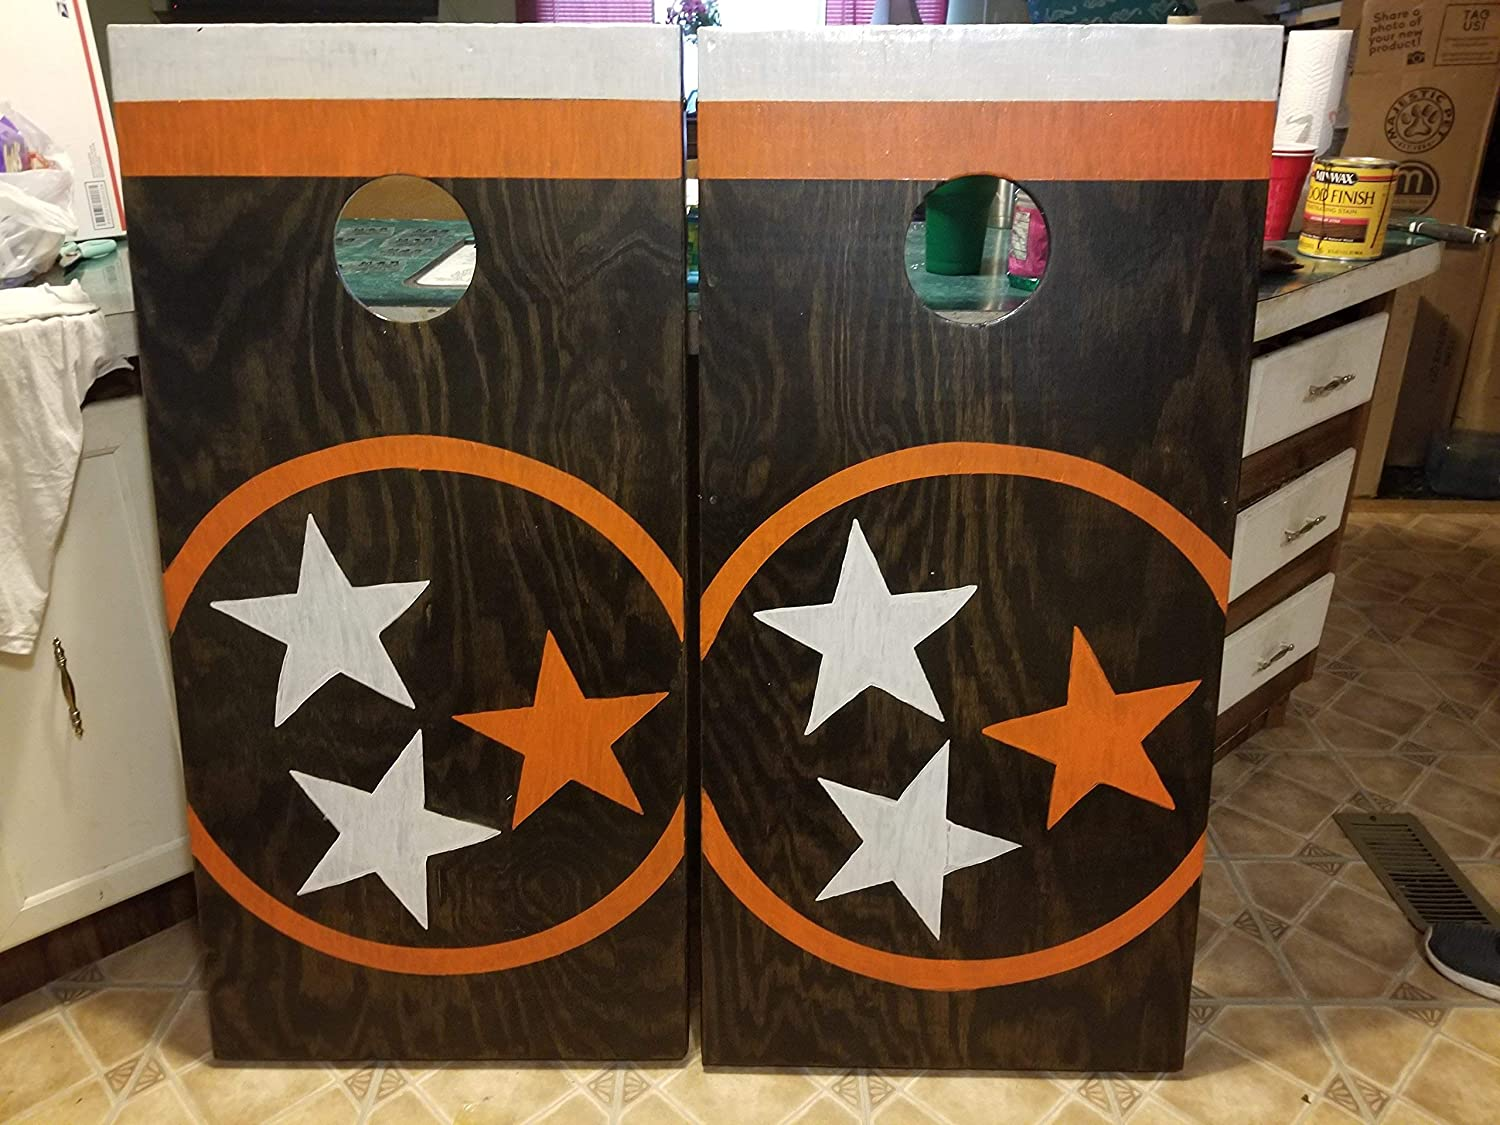 Heavy Duty Hand Painted Cornhole // Bean Bag Toss Set with Bags Custom Built Hand painted any design you want! Order now for the holiday discount!